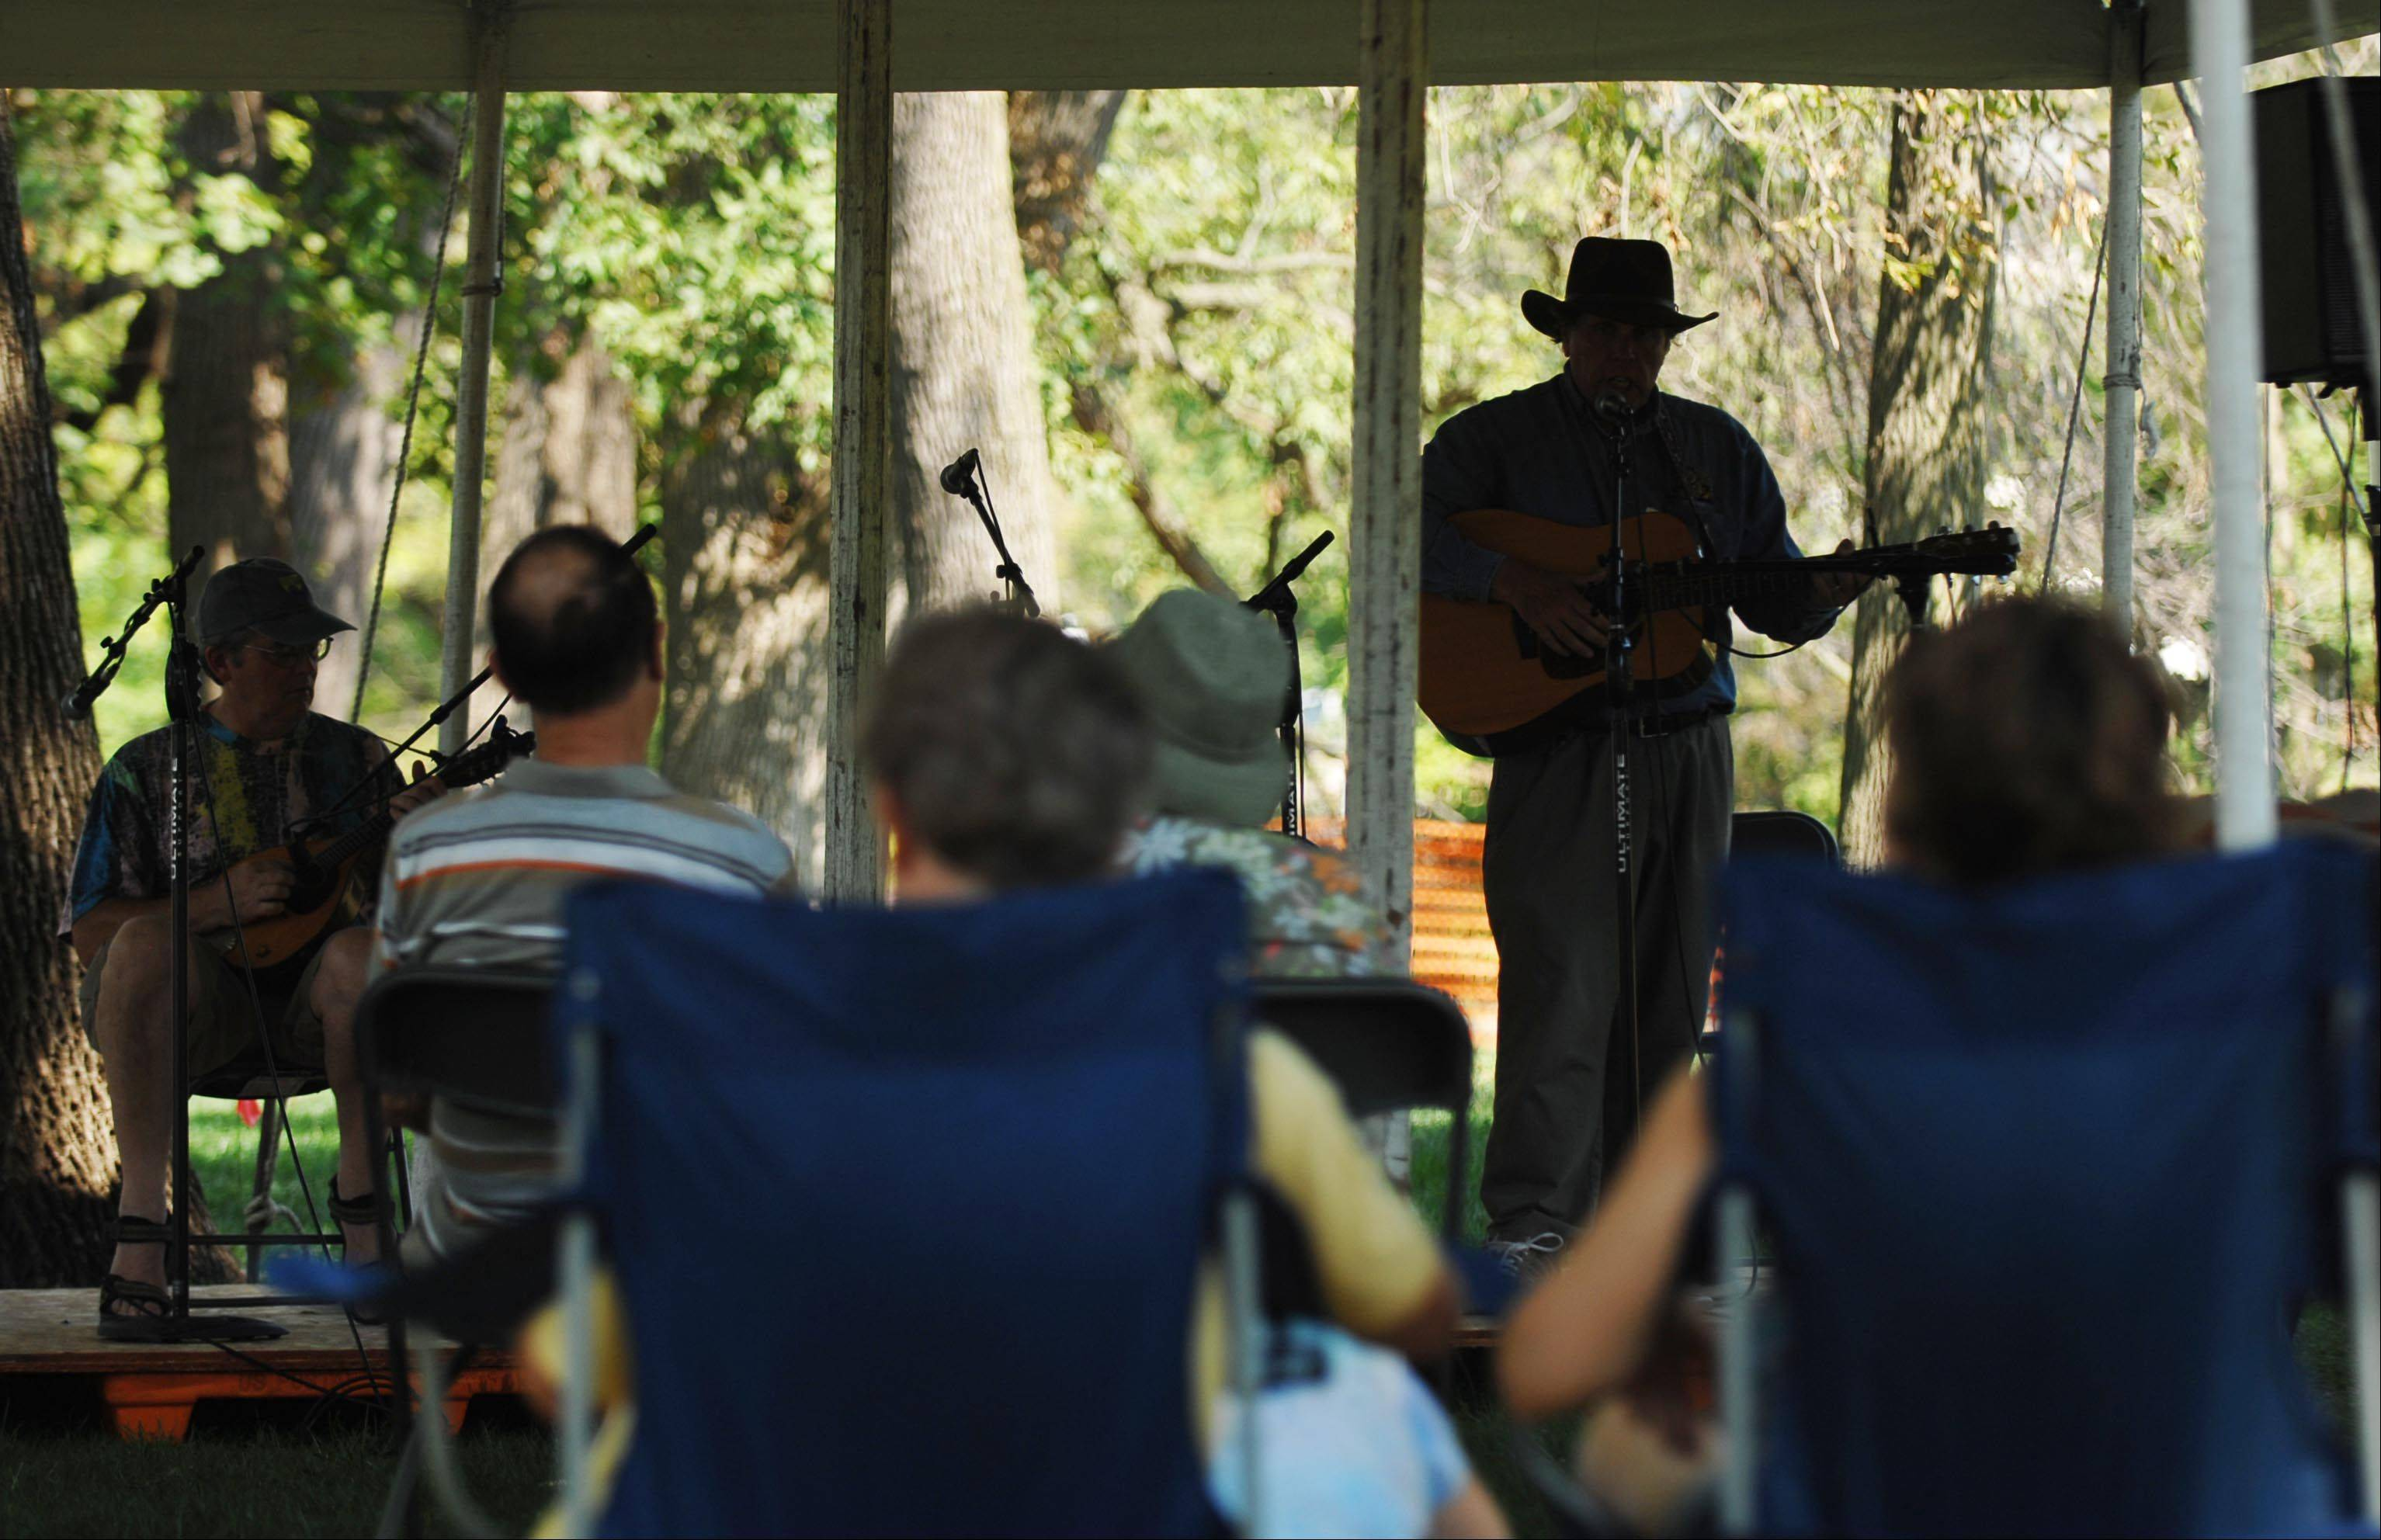 Jeff Lee of LaGrange Park plays the fiddle and Ed Ellis of Chicago plays guitar in the shade while the crowd listens at the 36th Annual Fox Valley Folk Music & Storytelling Festival in Island Park in Geneva.